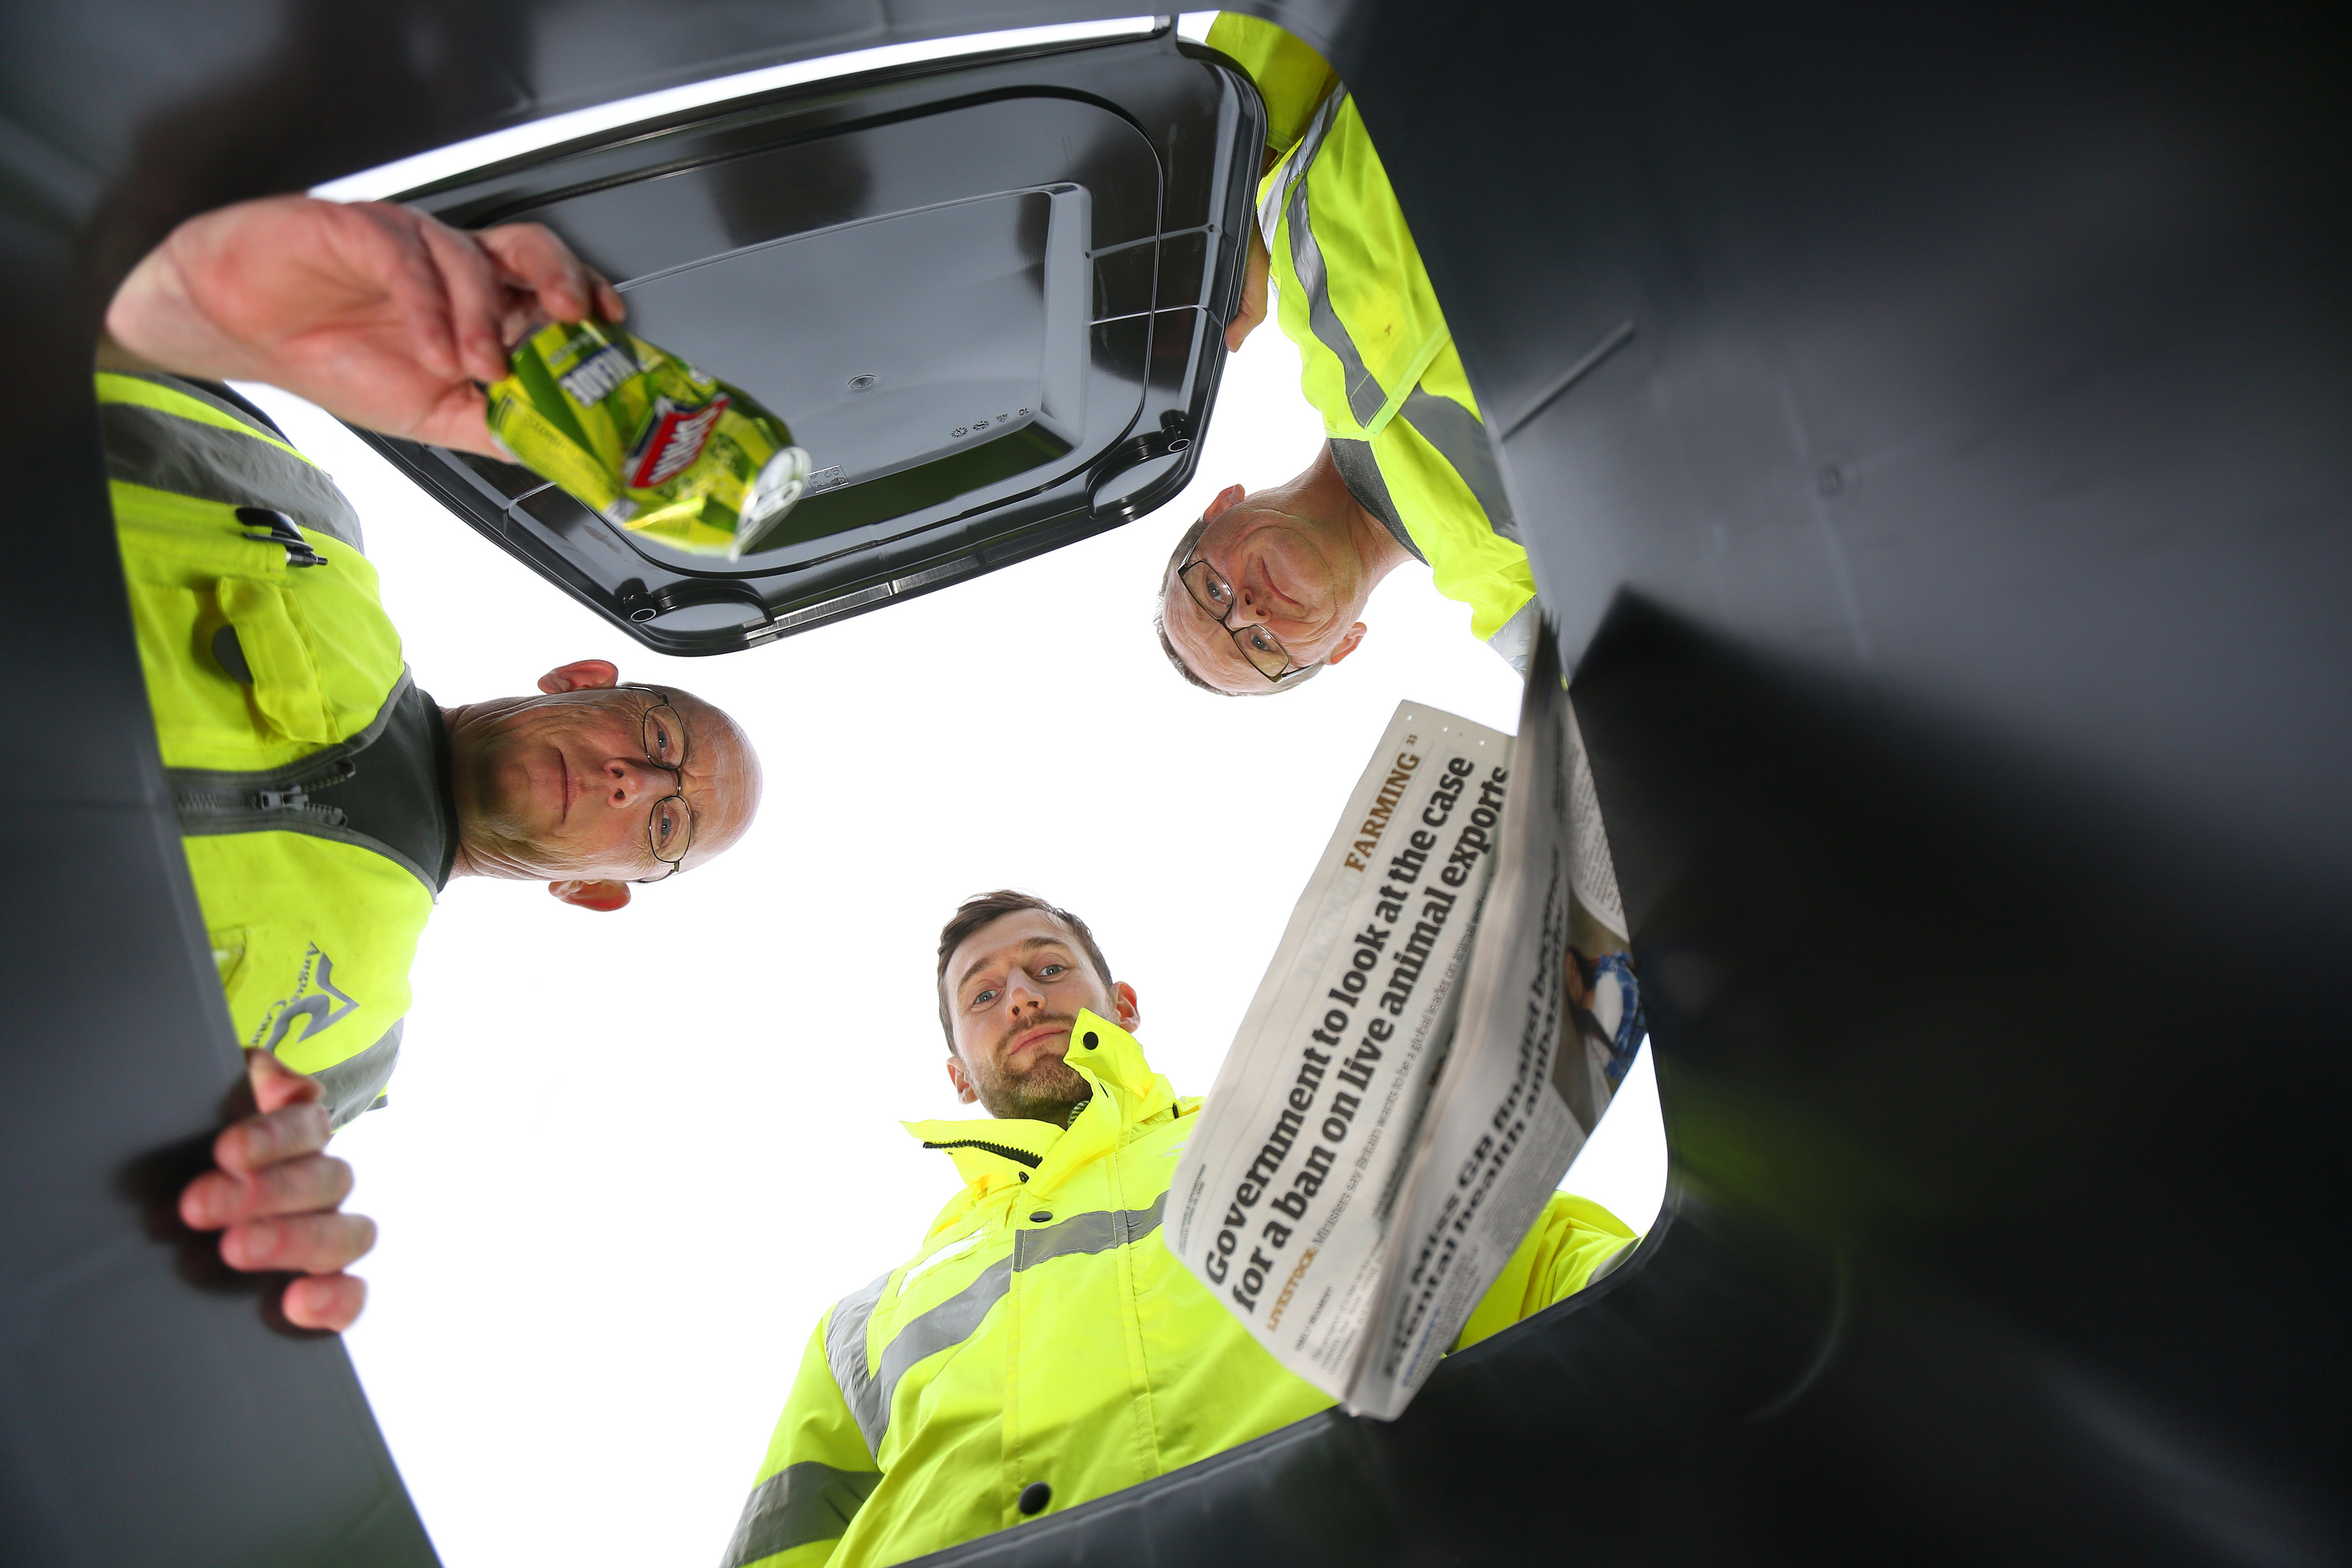 Area supervisor Charlie Paterson, Environmental   Services boss Graeme Dailly and driver Paul Cameron at Forfar vwaste depot